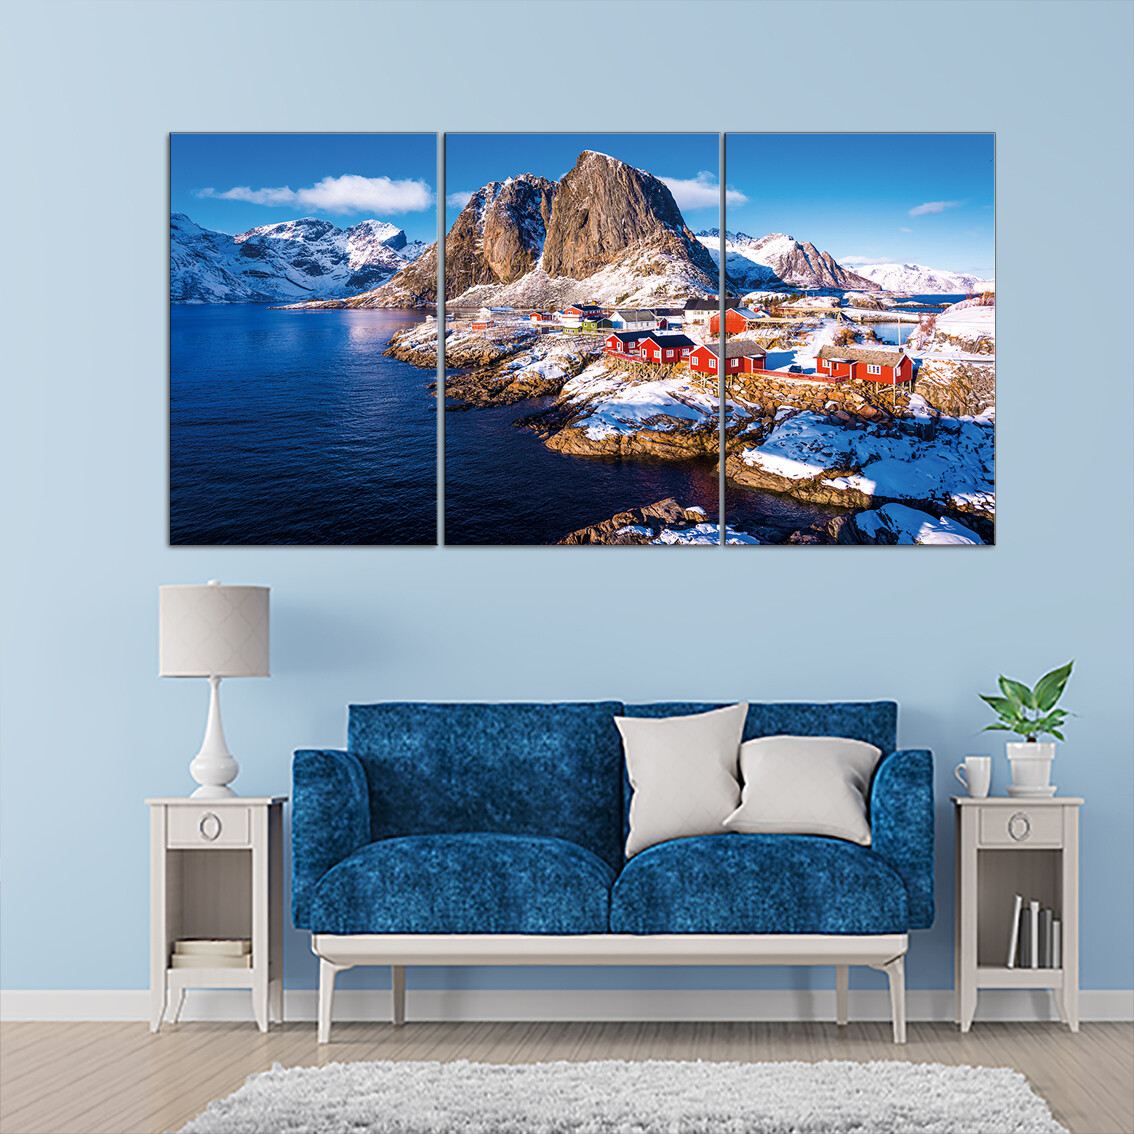 Lofoten Island, Norway  - Modern Luxury Wall art Printed on Acrylic Glass - Frameless and Ready to Hang